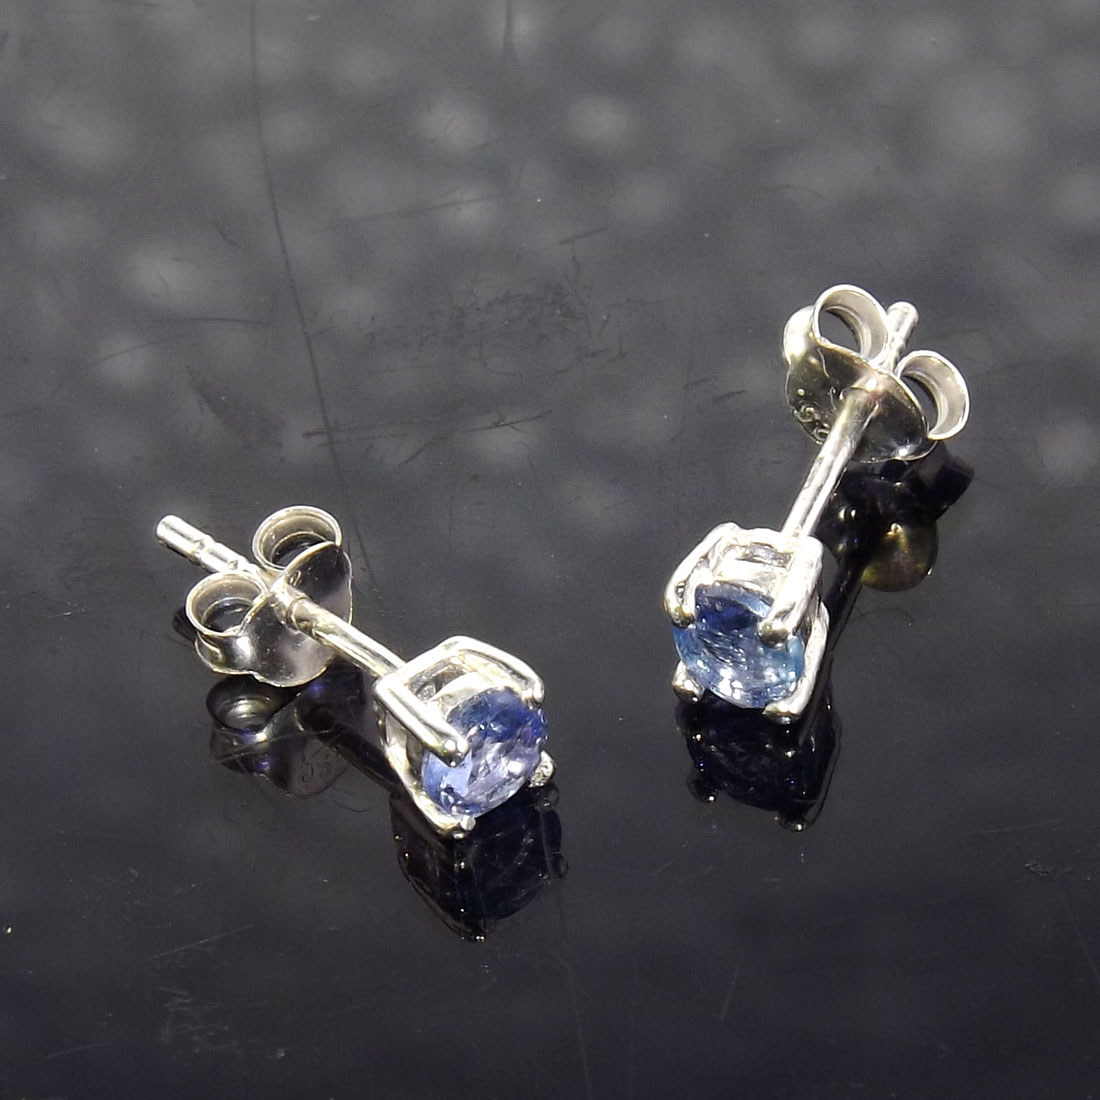 Tanzanite Cut F - SSE861-4x4 Round Stunning Tanzanite 925 Sterling Silver Stud Ear